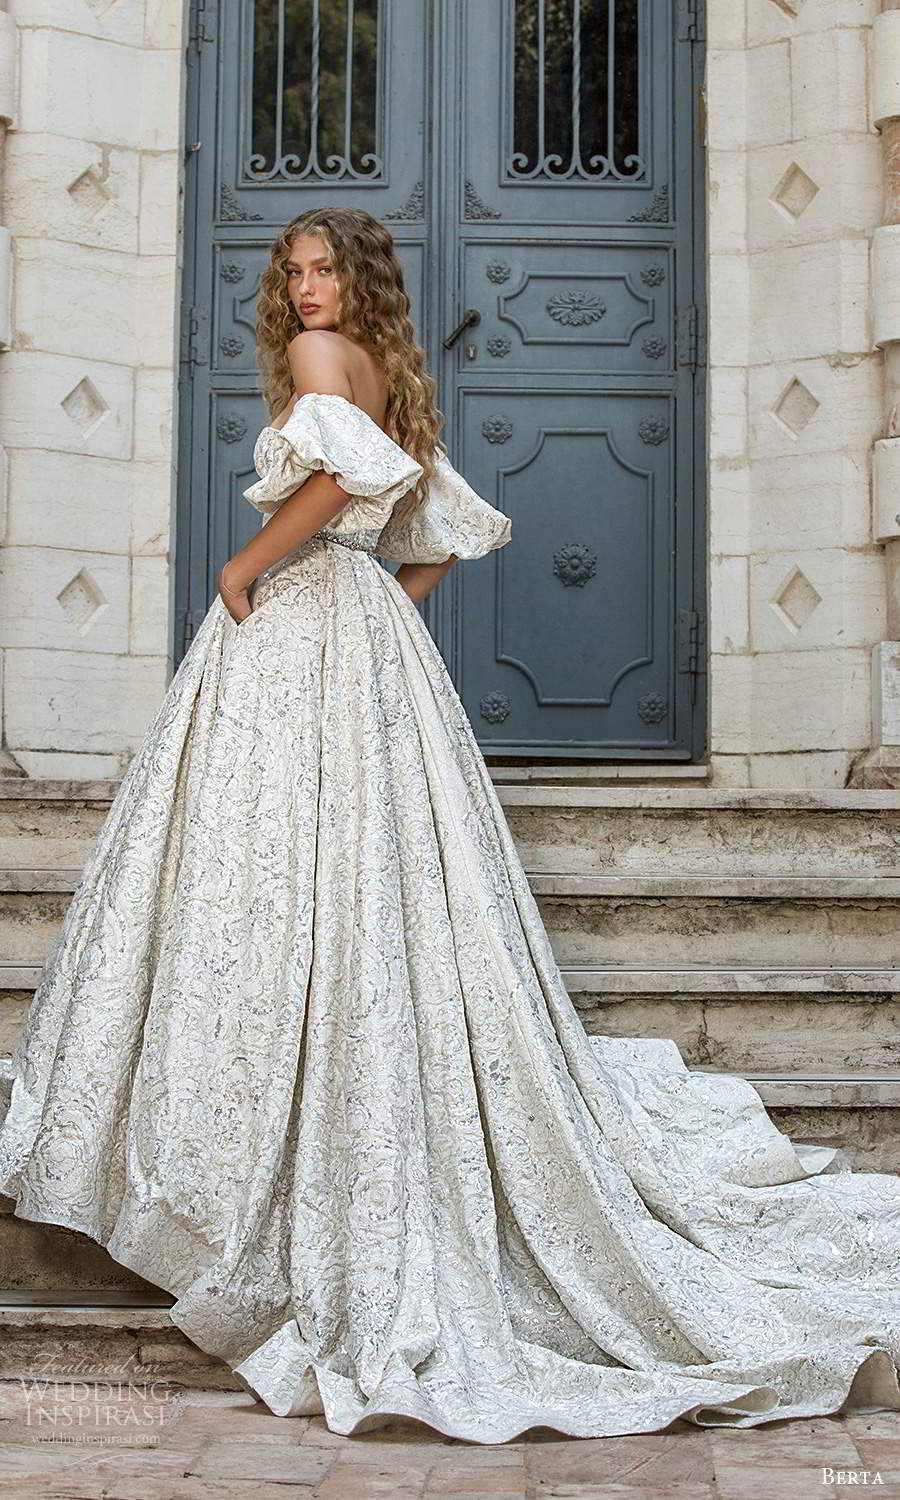 berta fall 2021 bridal detached puff sleeves strapless semi sweetheart neckline fully embellished a line ball gown wedding dress chapel train (8) bv